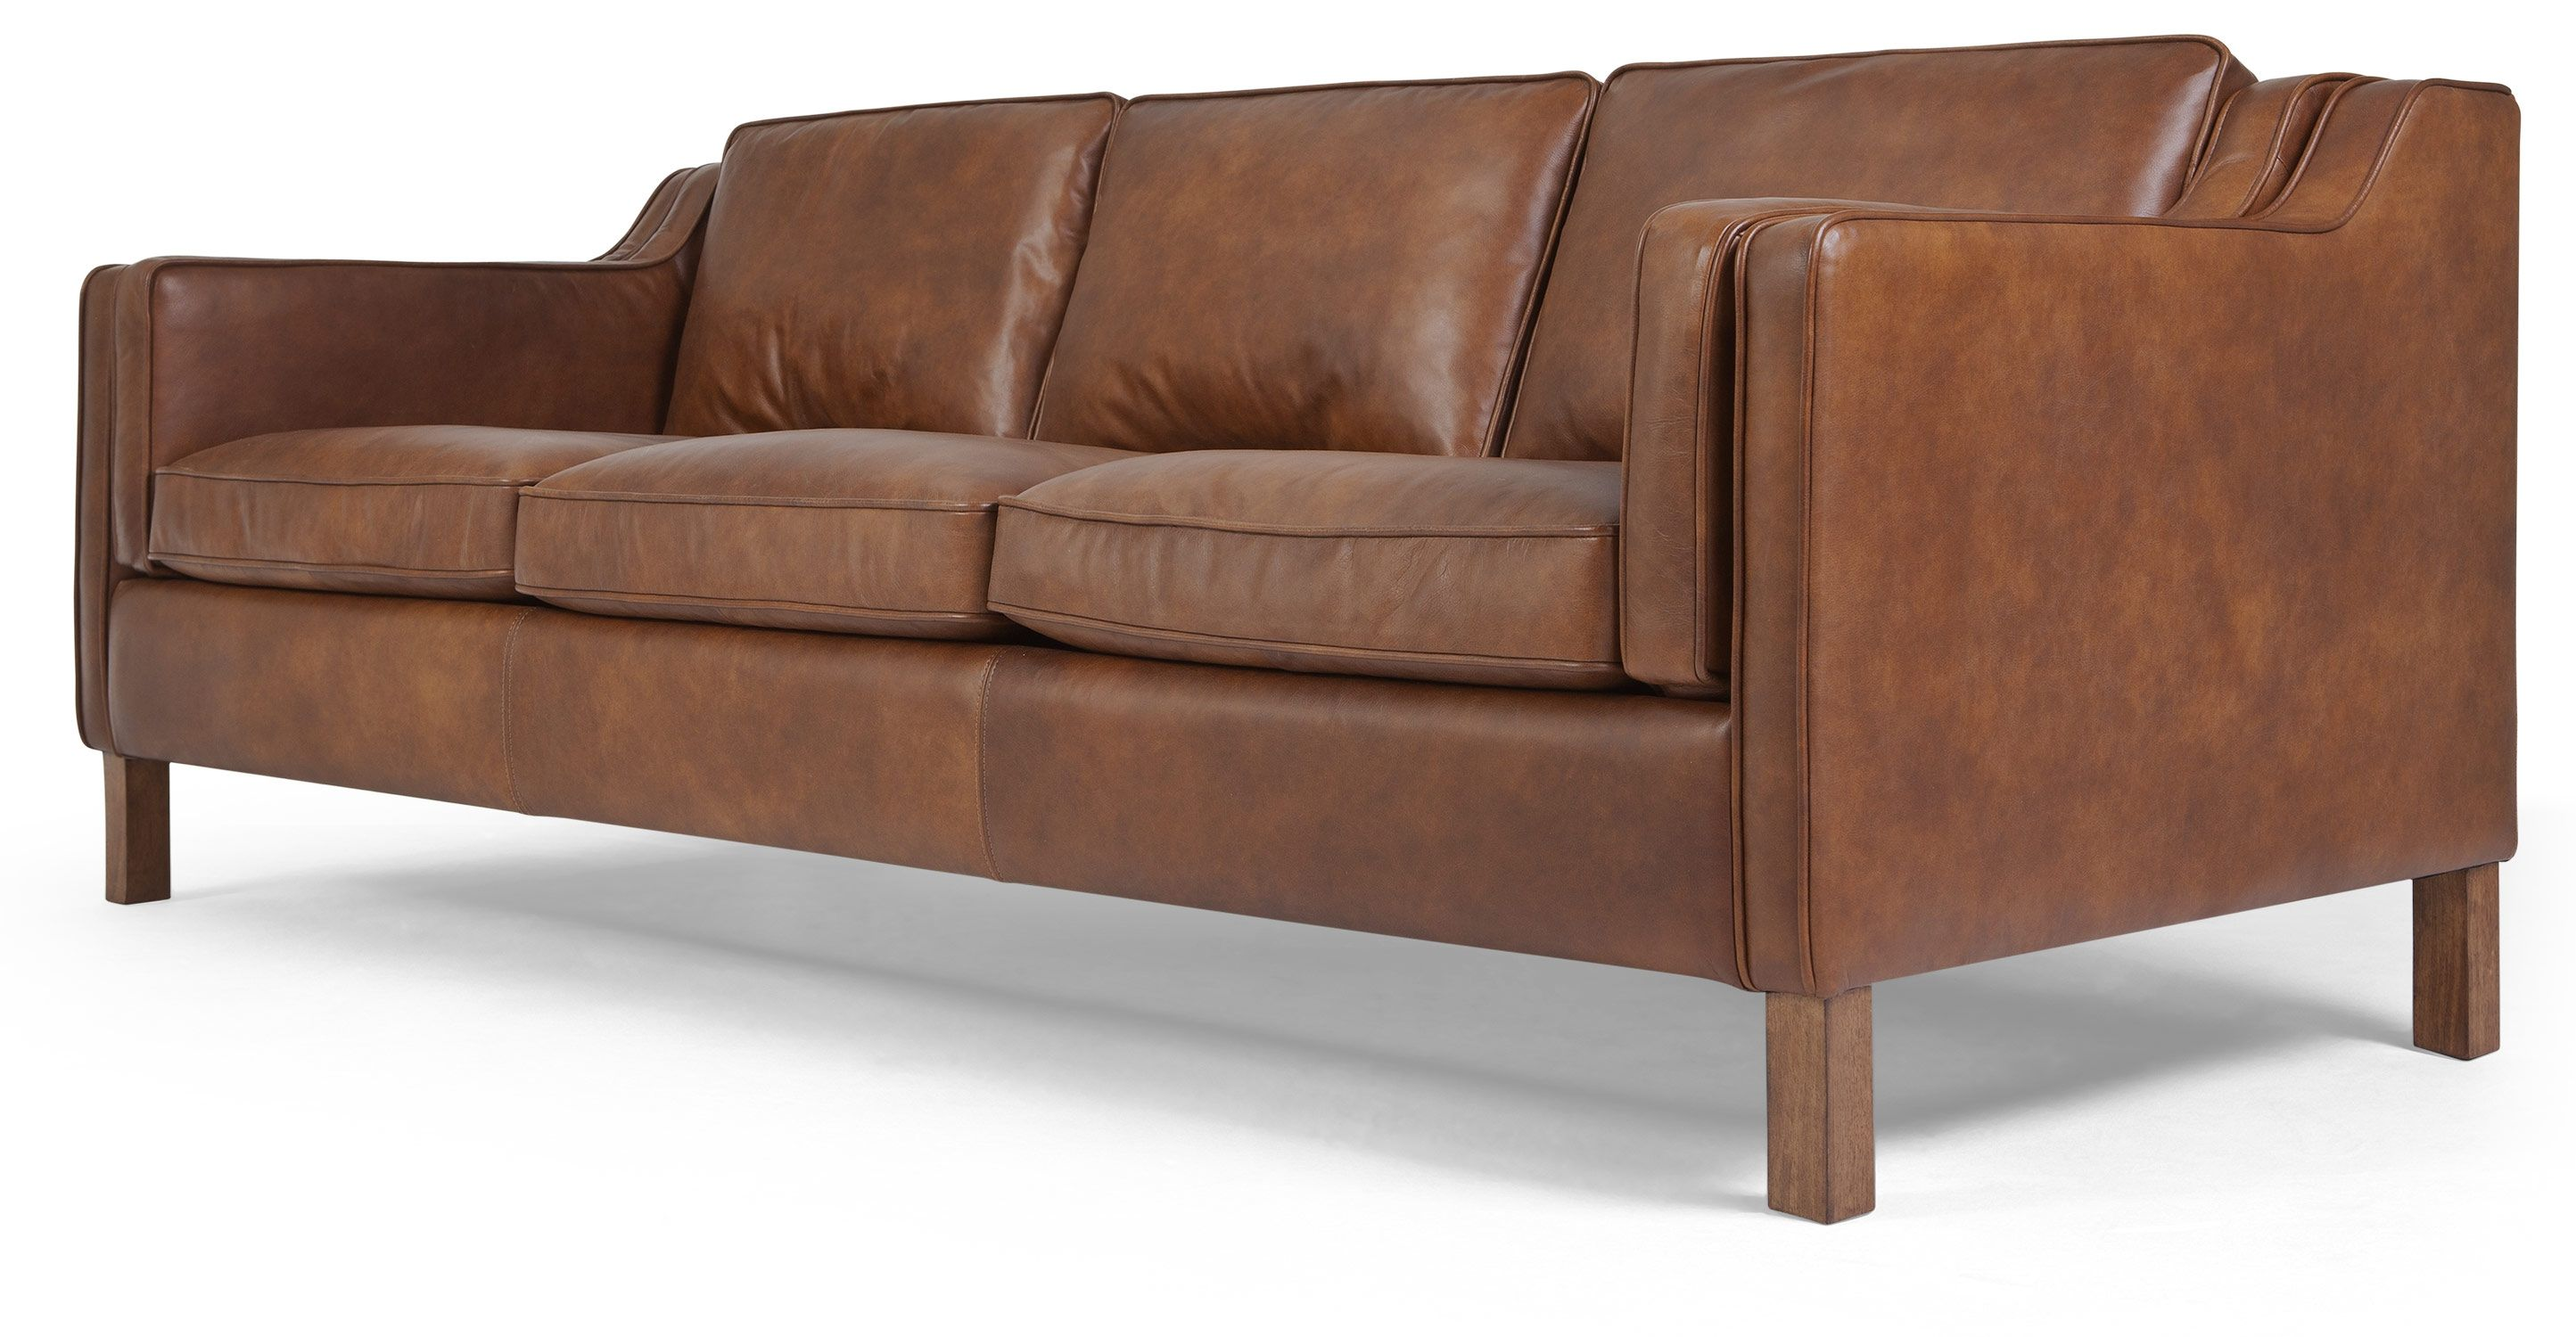 nice Tan Leather Sofa , Lovely Tan Leather Sofa 43 Contemporary Sofa  Inspiration with Tan Leather